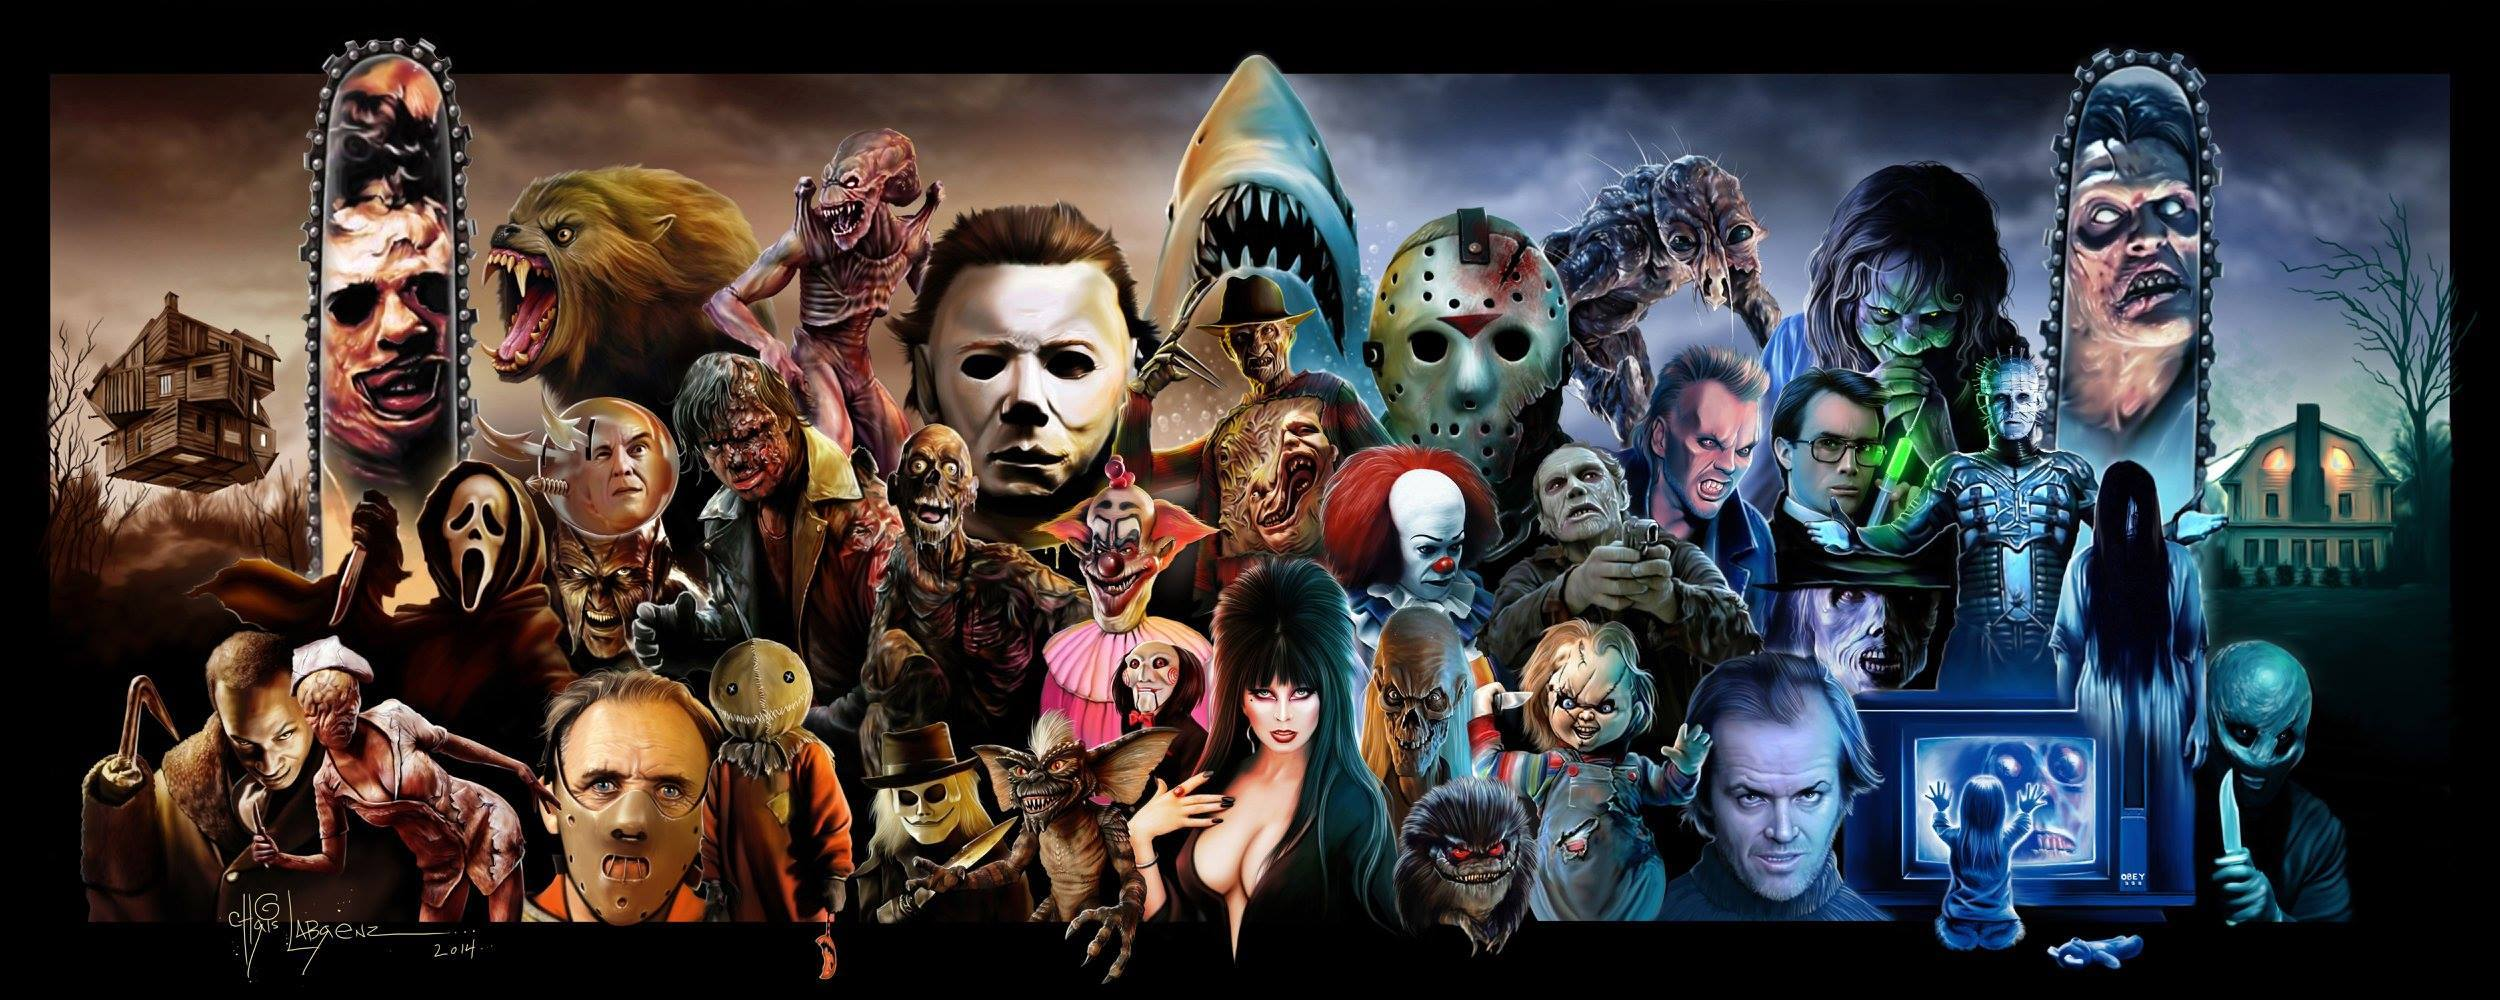 Horror movies whether you love them or hate them are bound to give 2500x1000